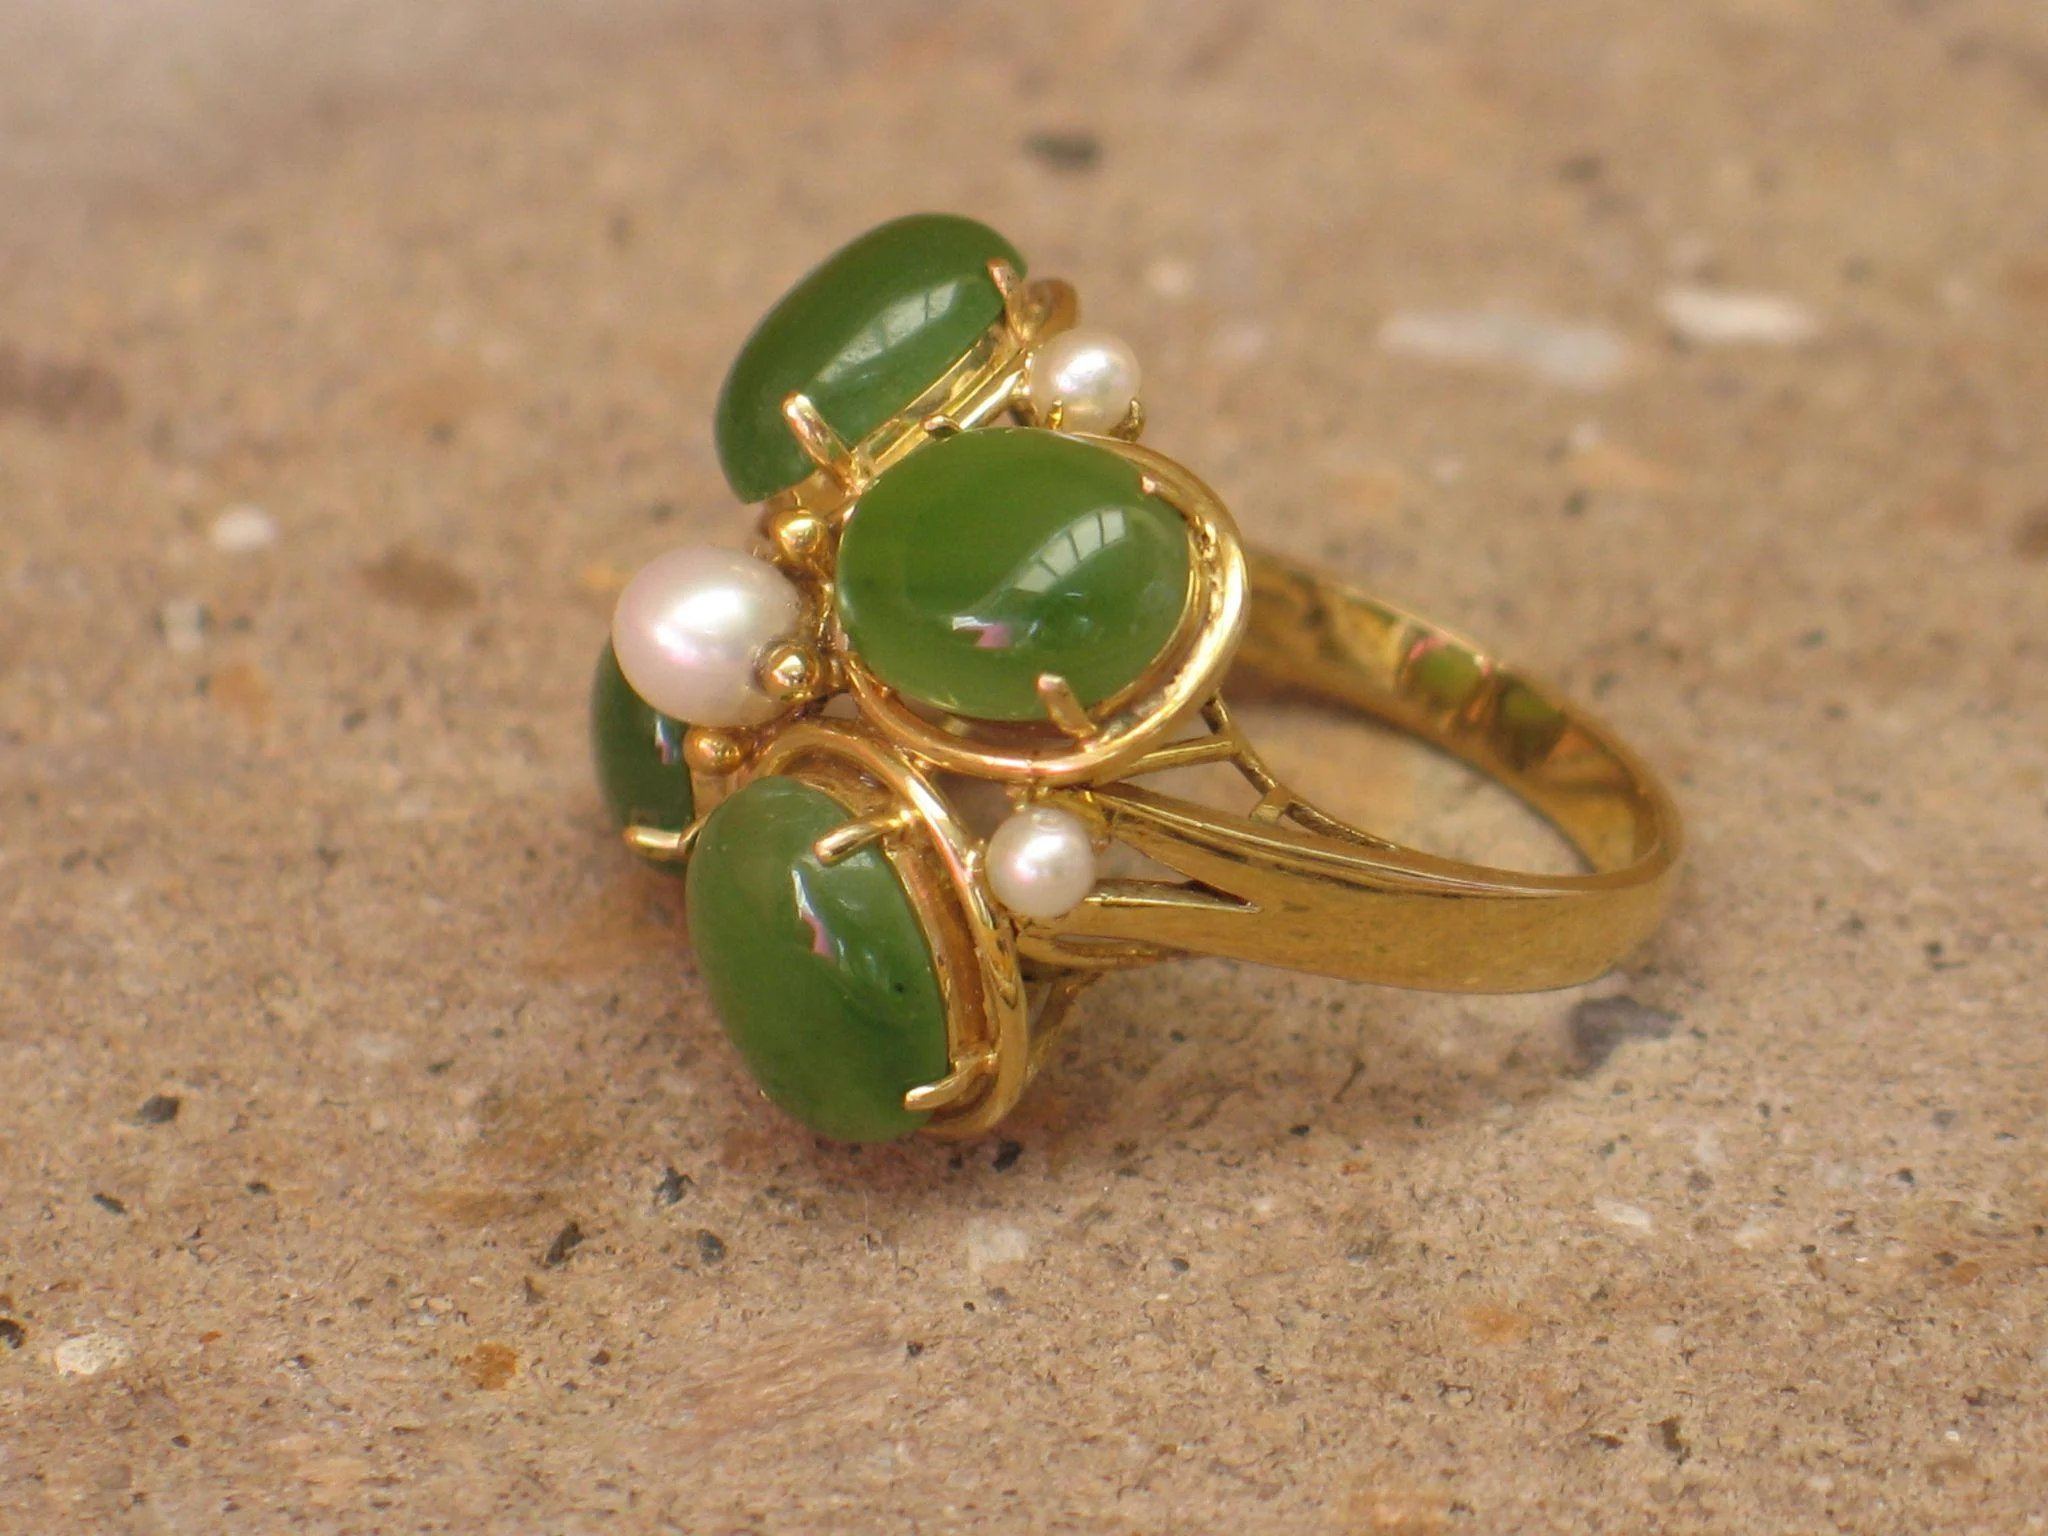 Large Vintage Jade Cocktail Ring With Pearl In 14k Yellow